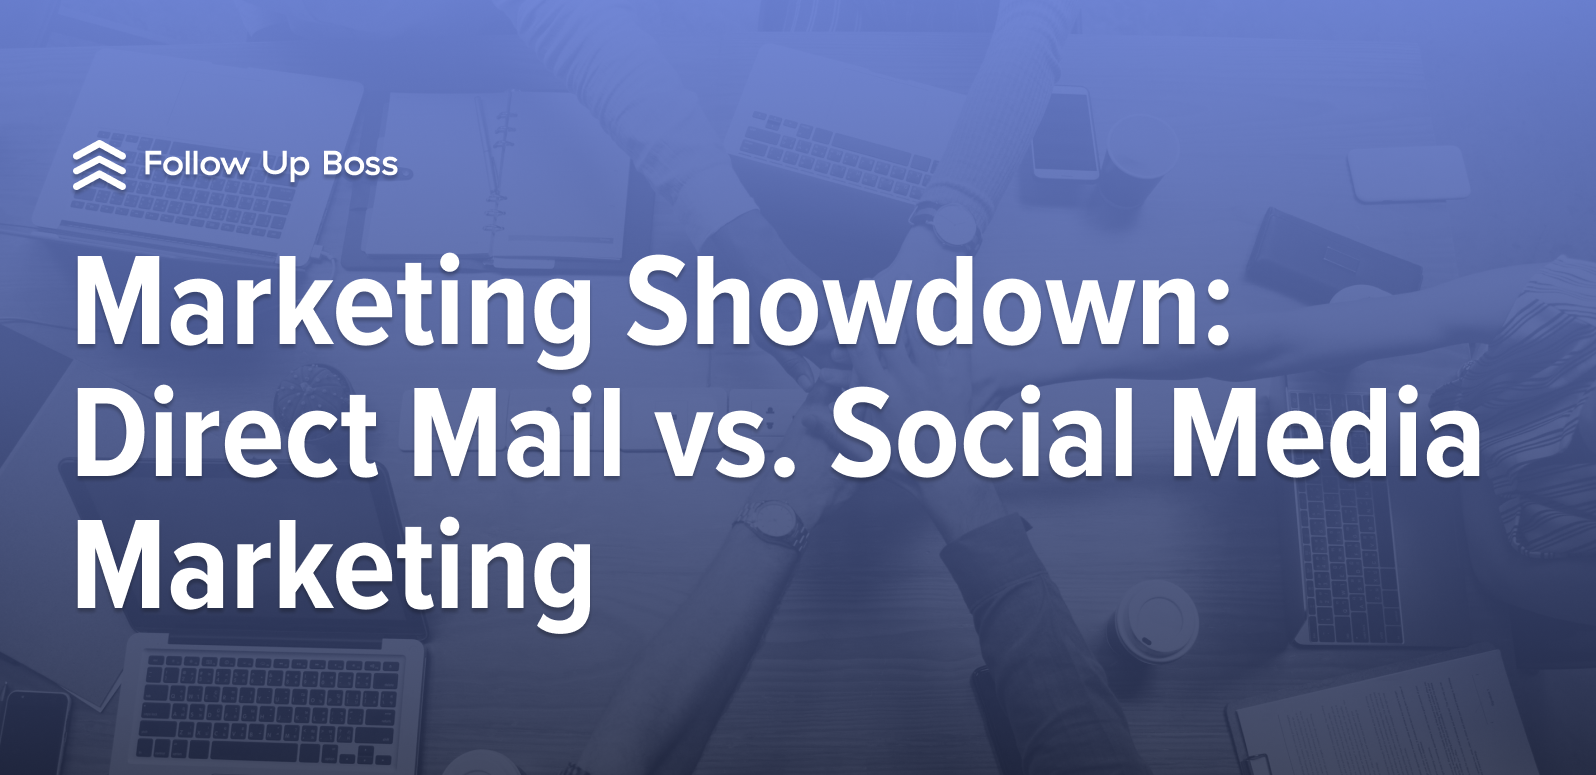 Marketing Showdown: Direct Mail vs. Social Media